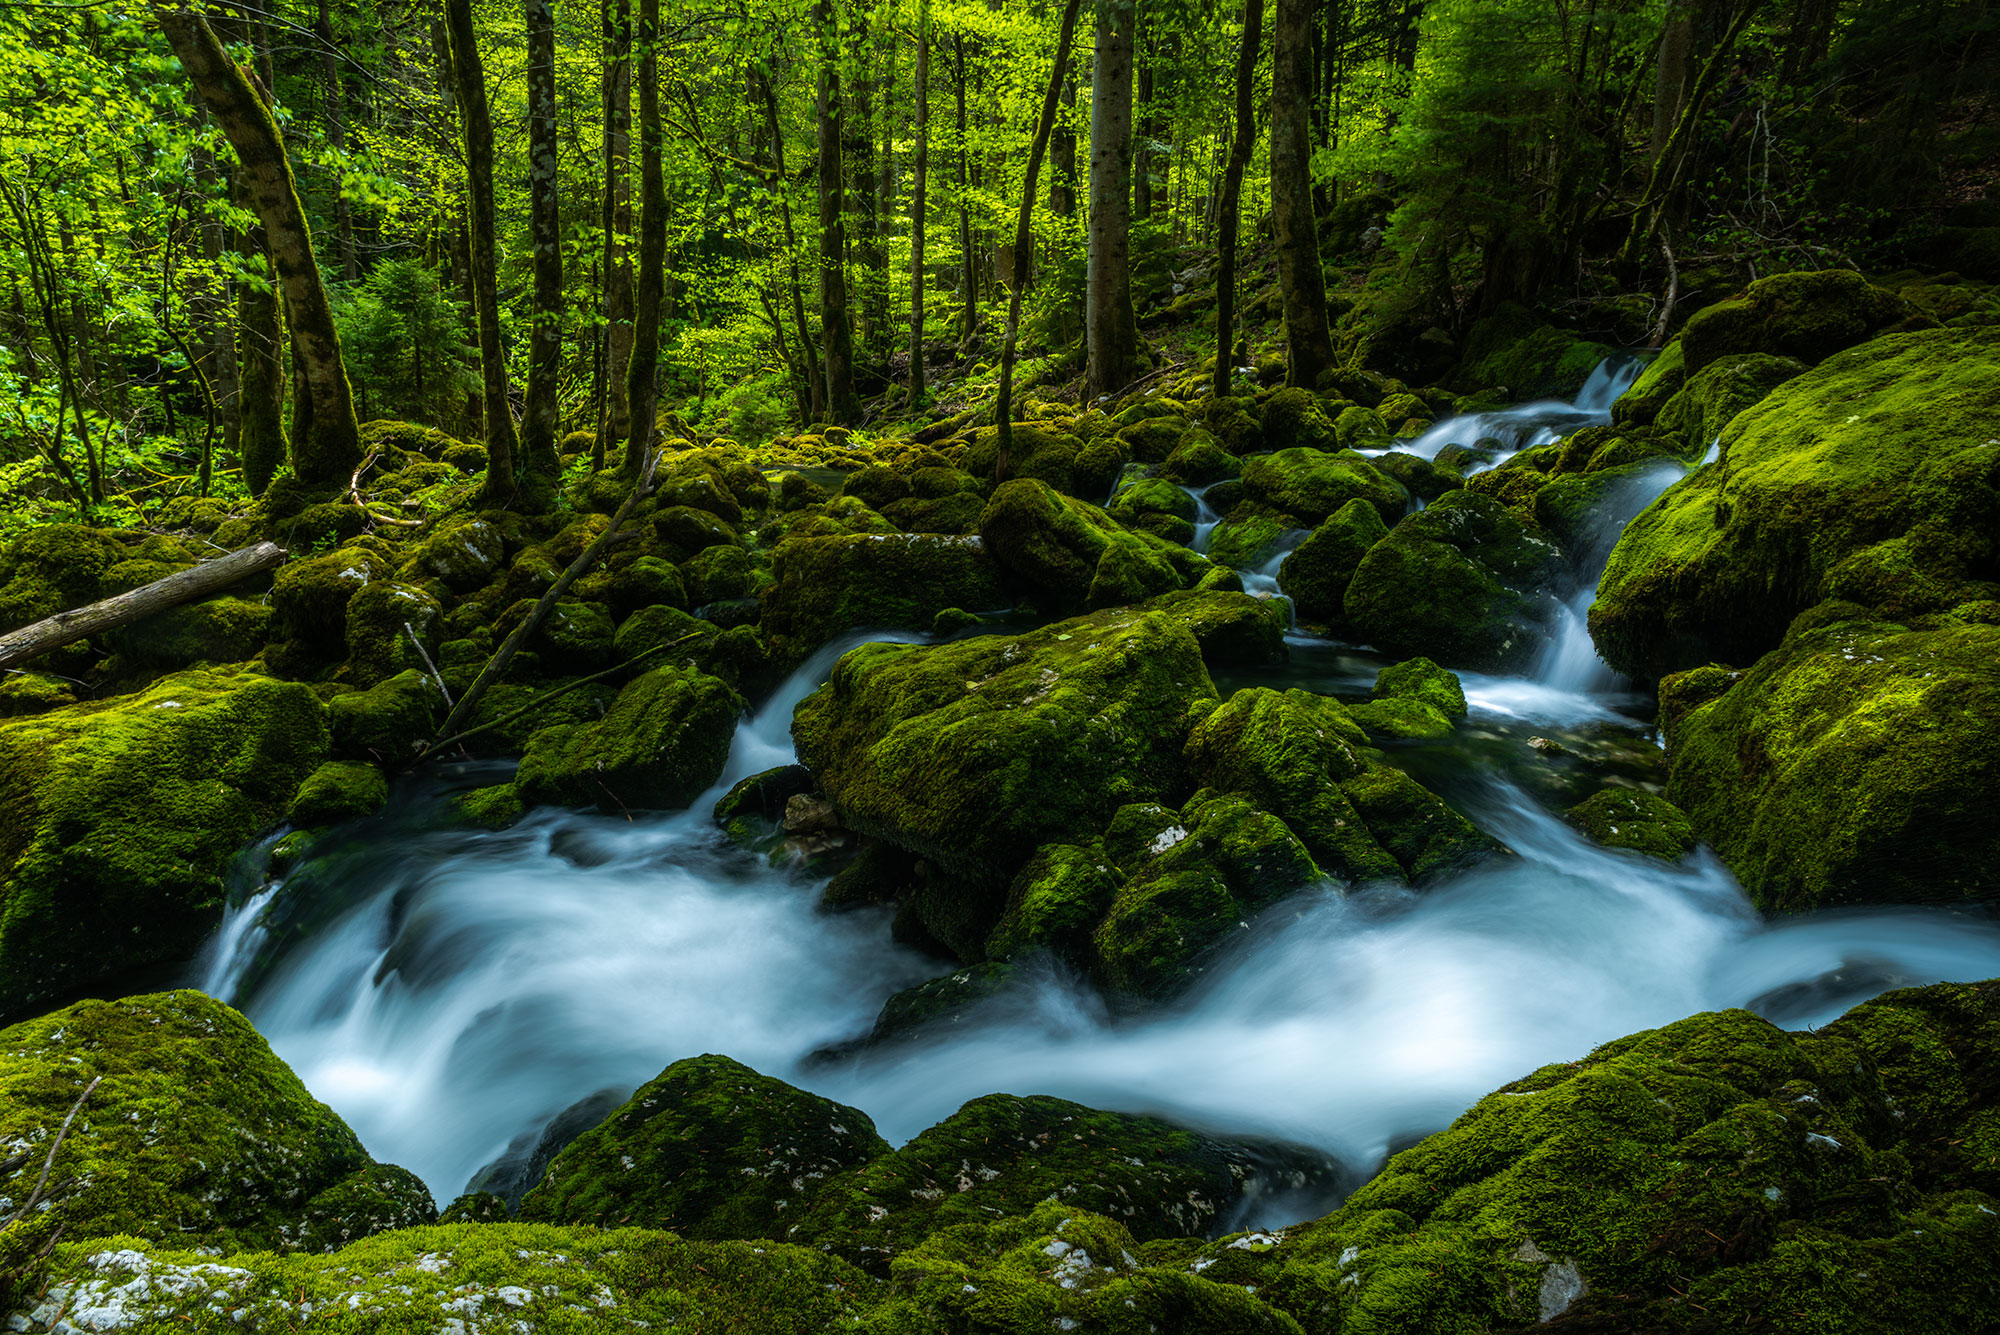 Forest and river landscape photography, in Switzerland.